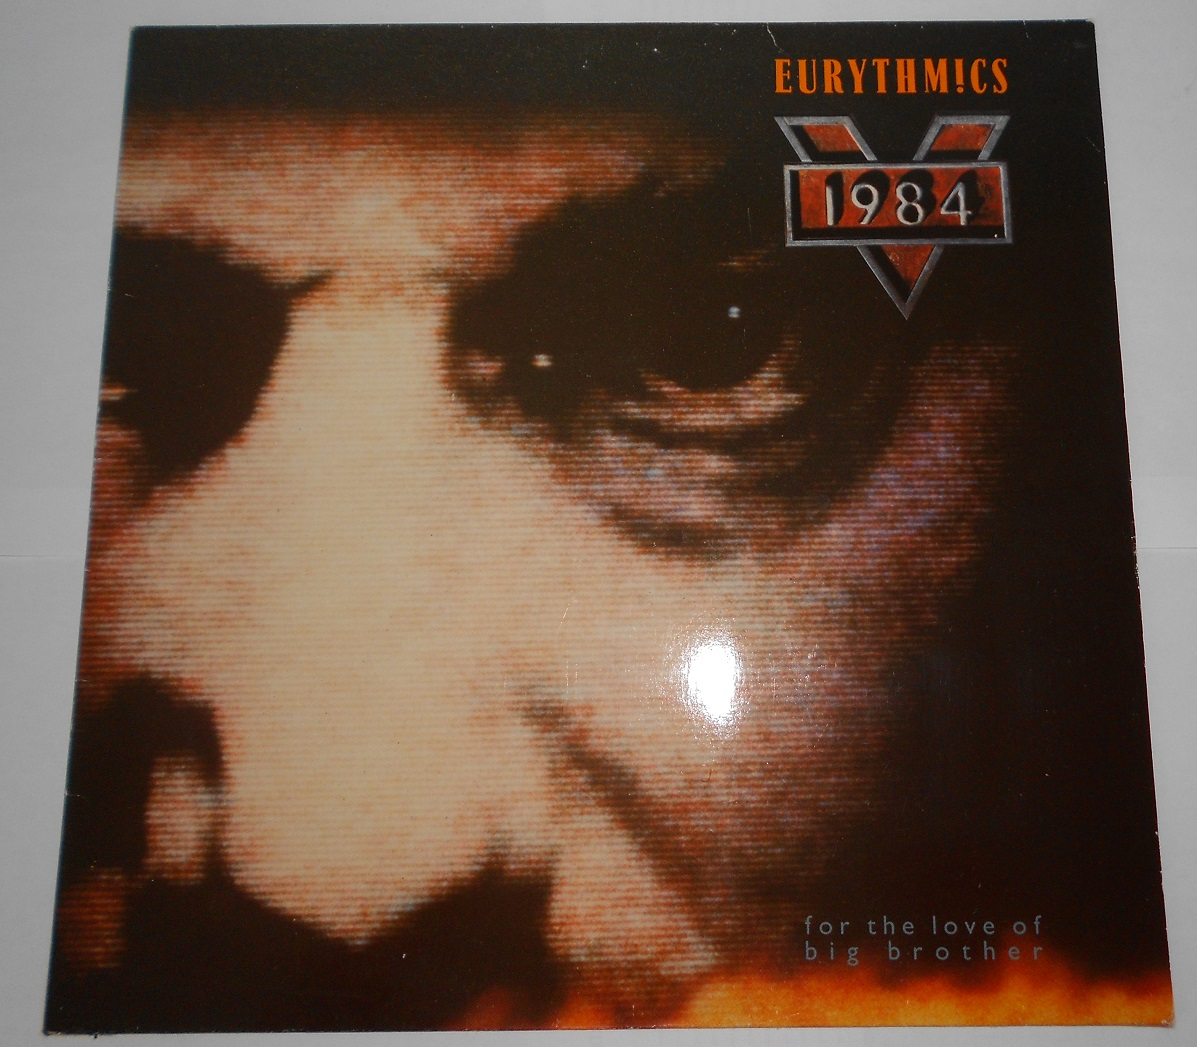 Eurythmics - 1984 (For The Love Of Big Brother) (LP)